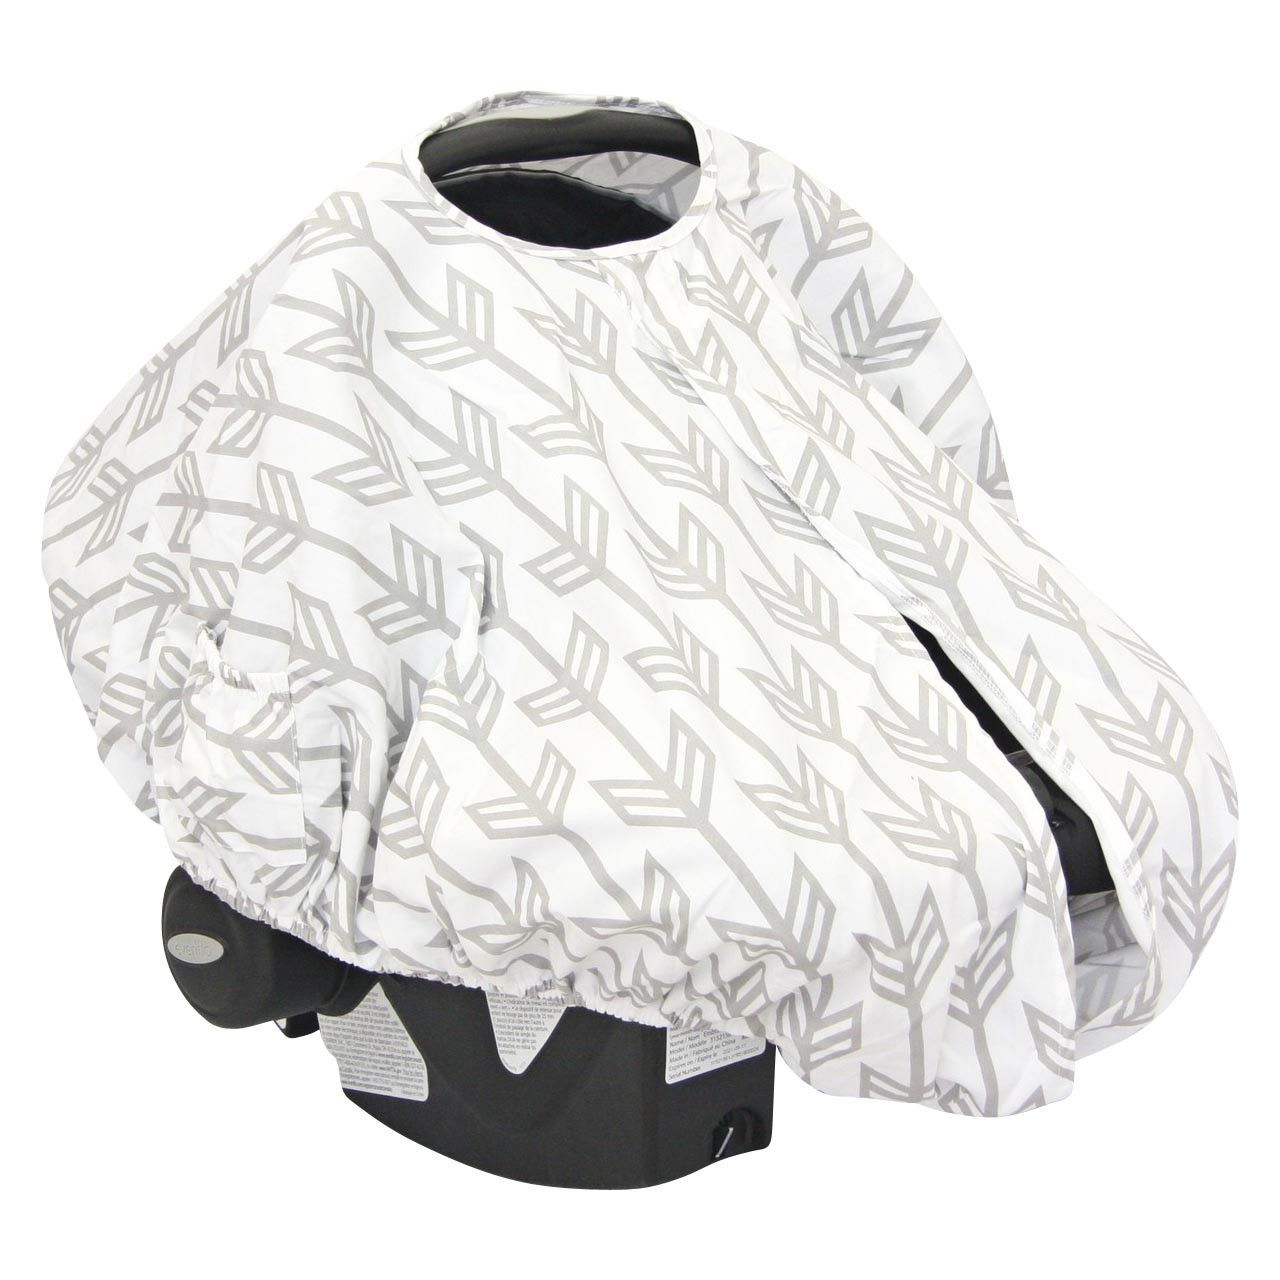 Gray Arrow Car Seat Canopy Cover  sc 1 st  Pinterest & Gray Arrow Car Seat Canopy Cover | Awesome Baby Gear | Pinterest ...